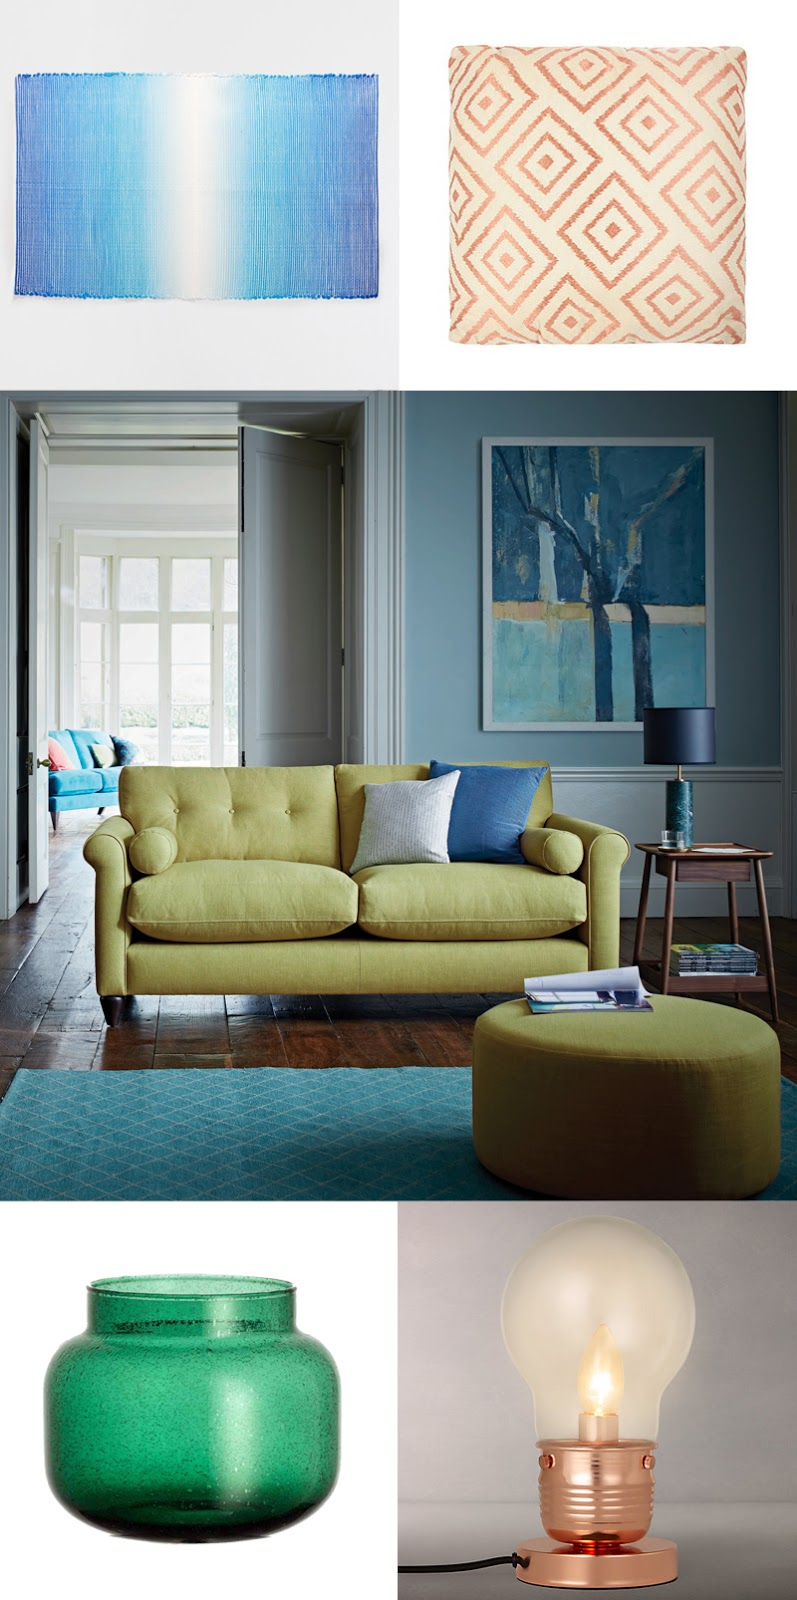 INTRODUCING SOFA COMPANY THE LOUNGE CO